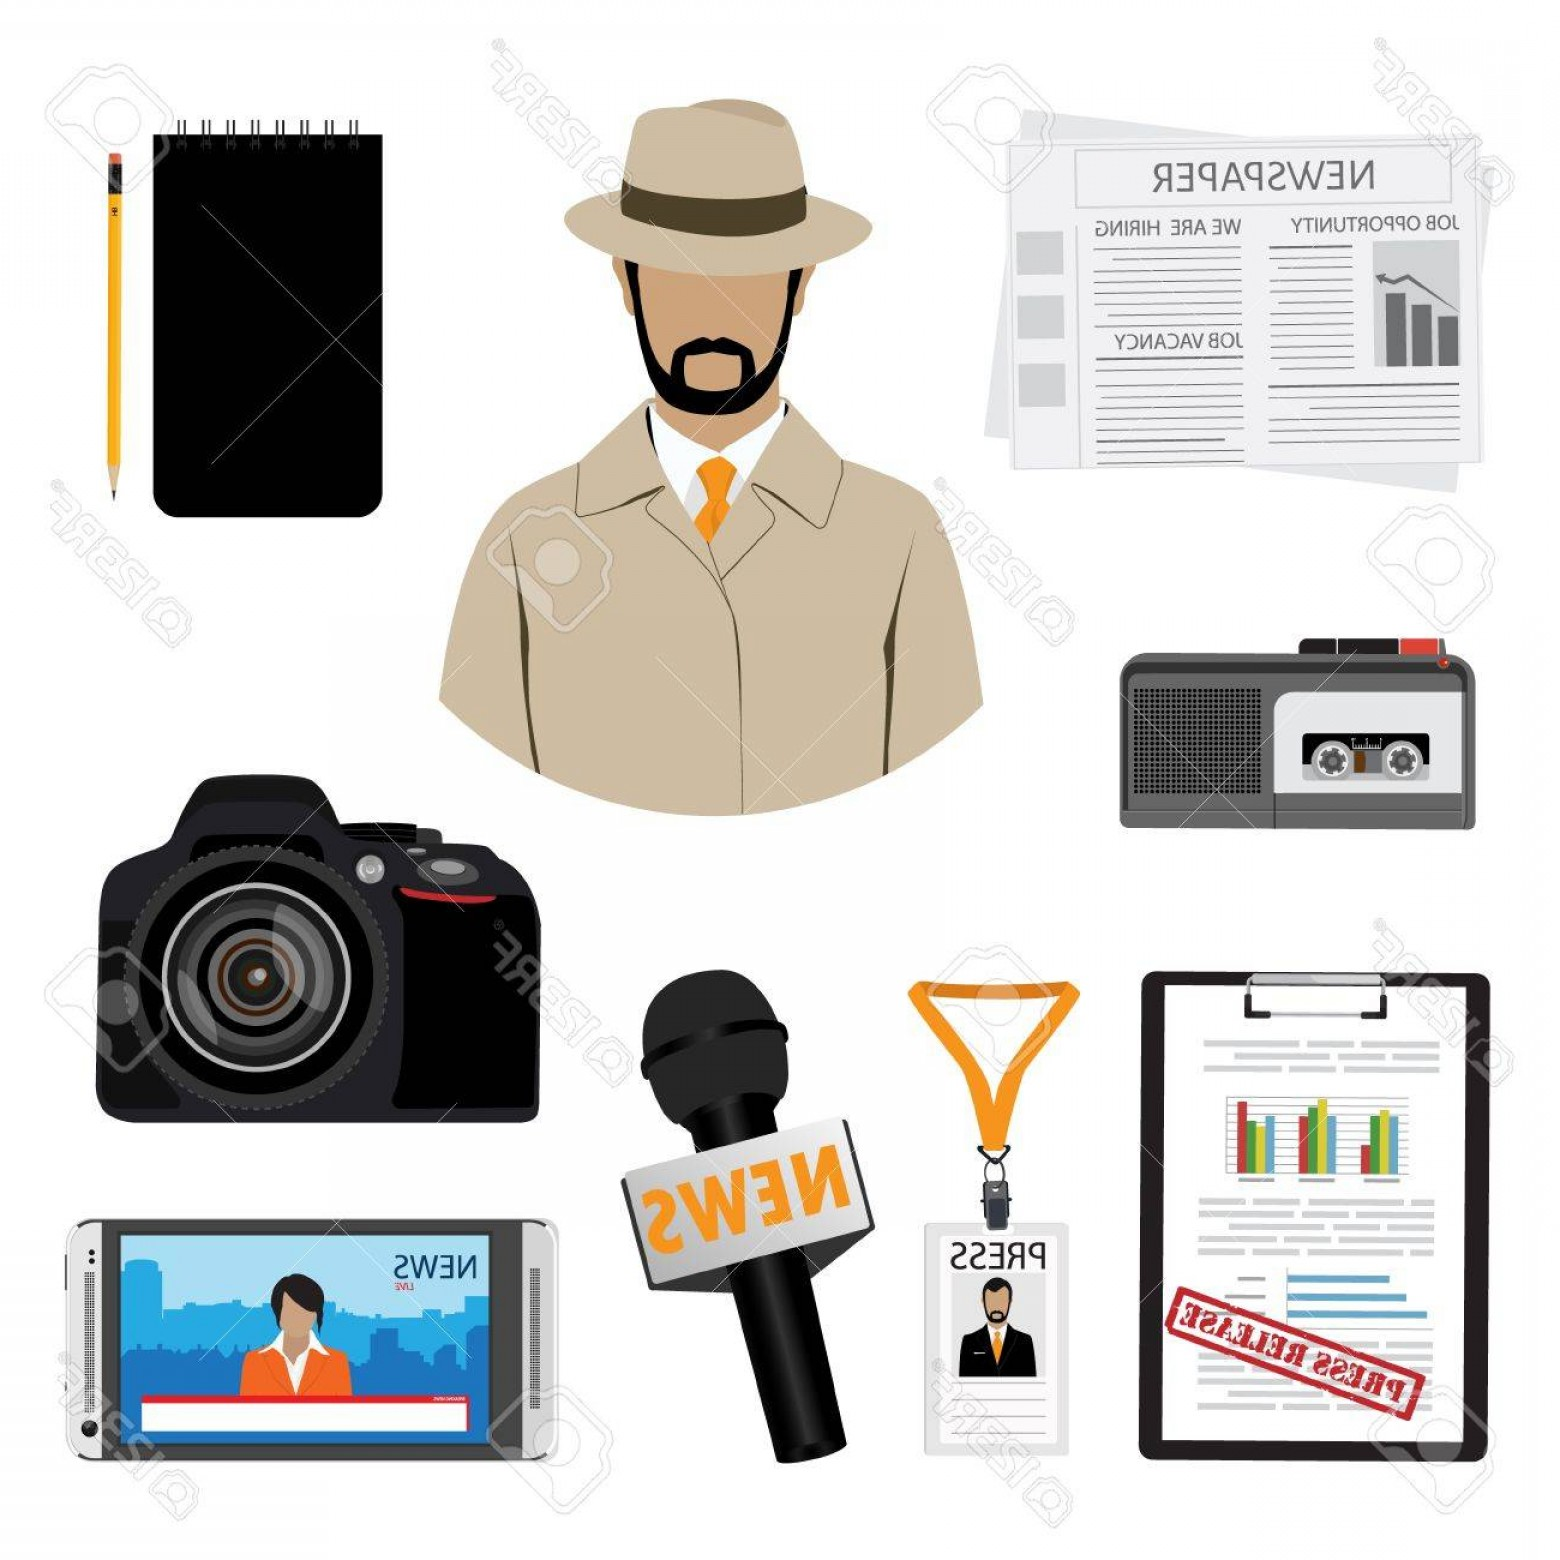 Hires Camera Lens Vector: Photostock Vector Journalist Or Reporter Vector Icon Set Dictaphone Microphone Press Release And Name Tag Badge Templa